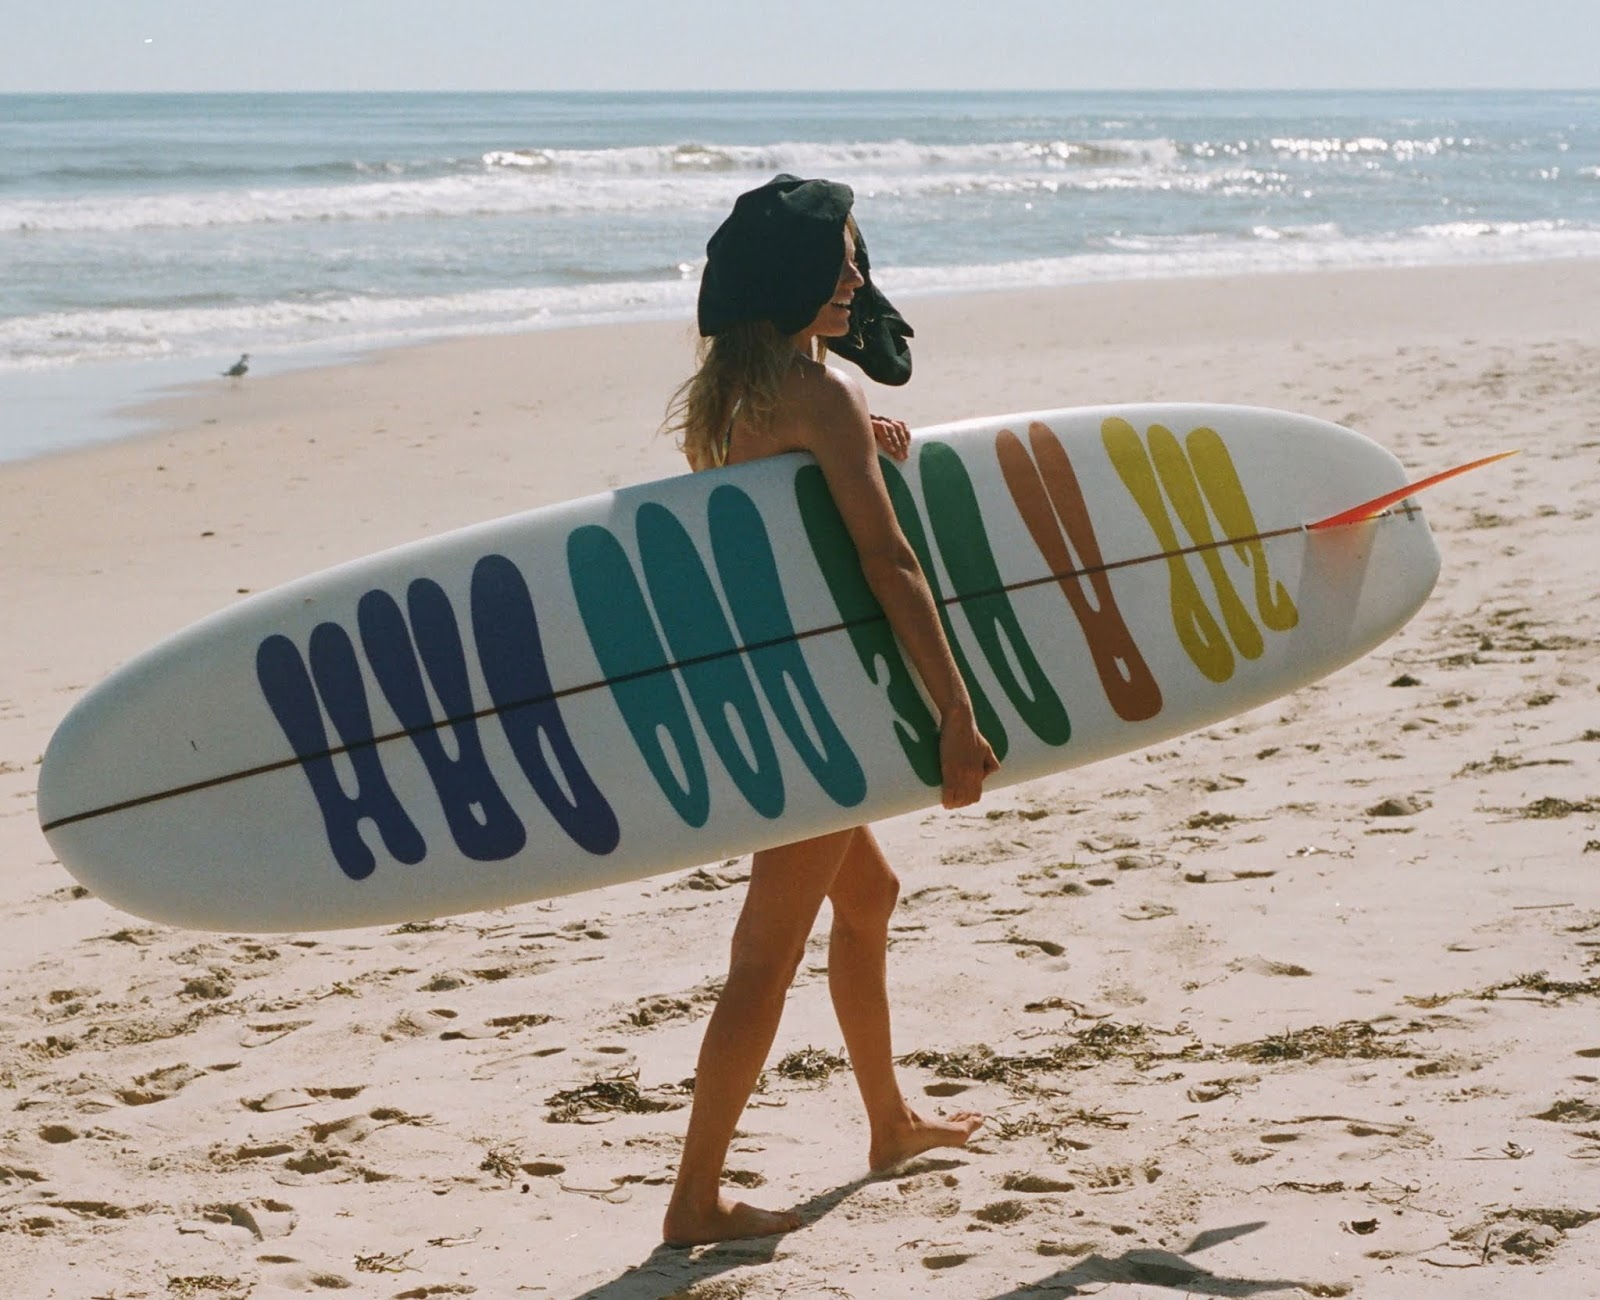 Surfinestate a moment with brand shop France Hossegor shape clothing apparel surf surfboard culture Vincent Lemanceau Arthur Nelli zippy seven Terence Connors Montauk noserider